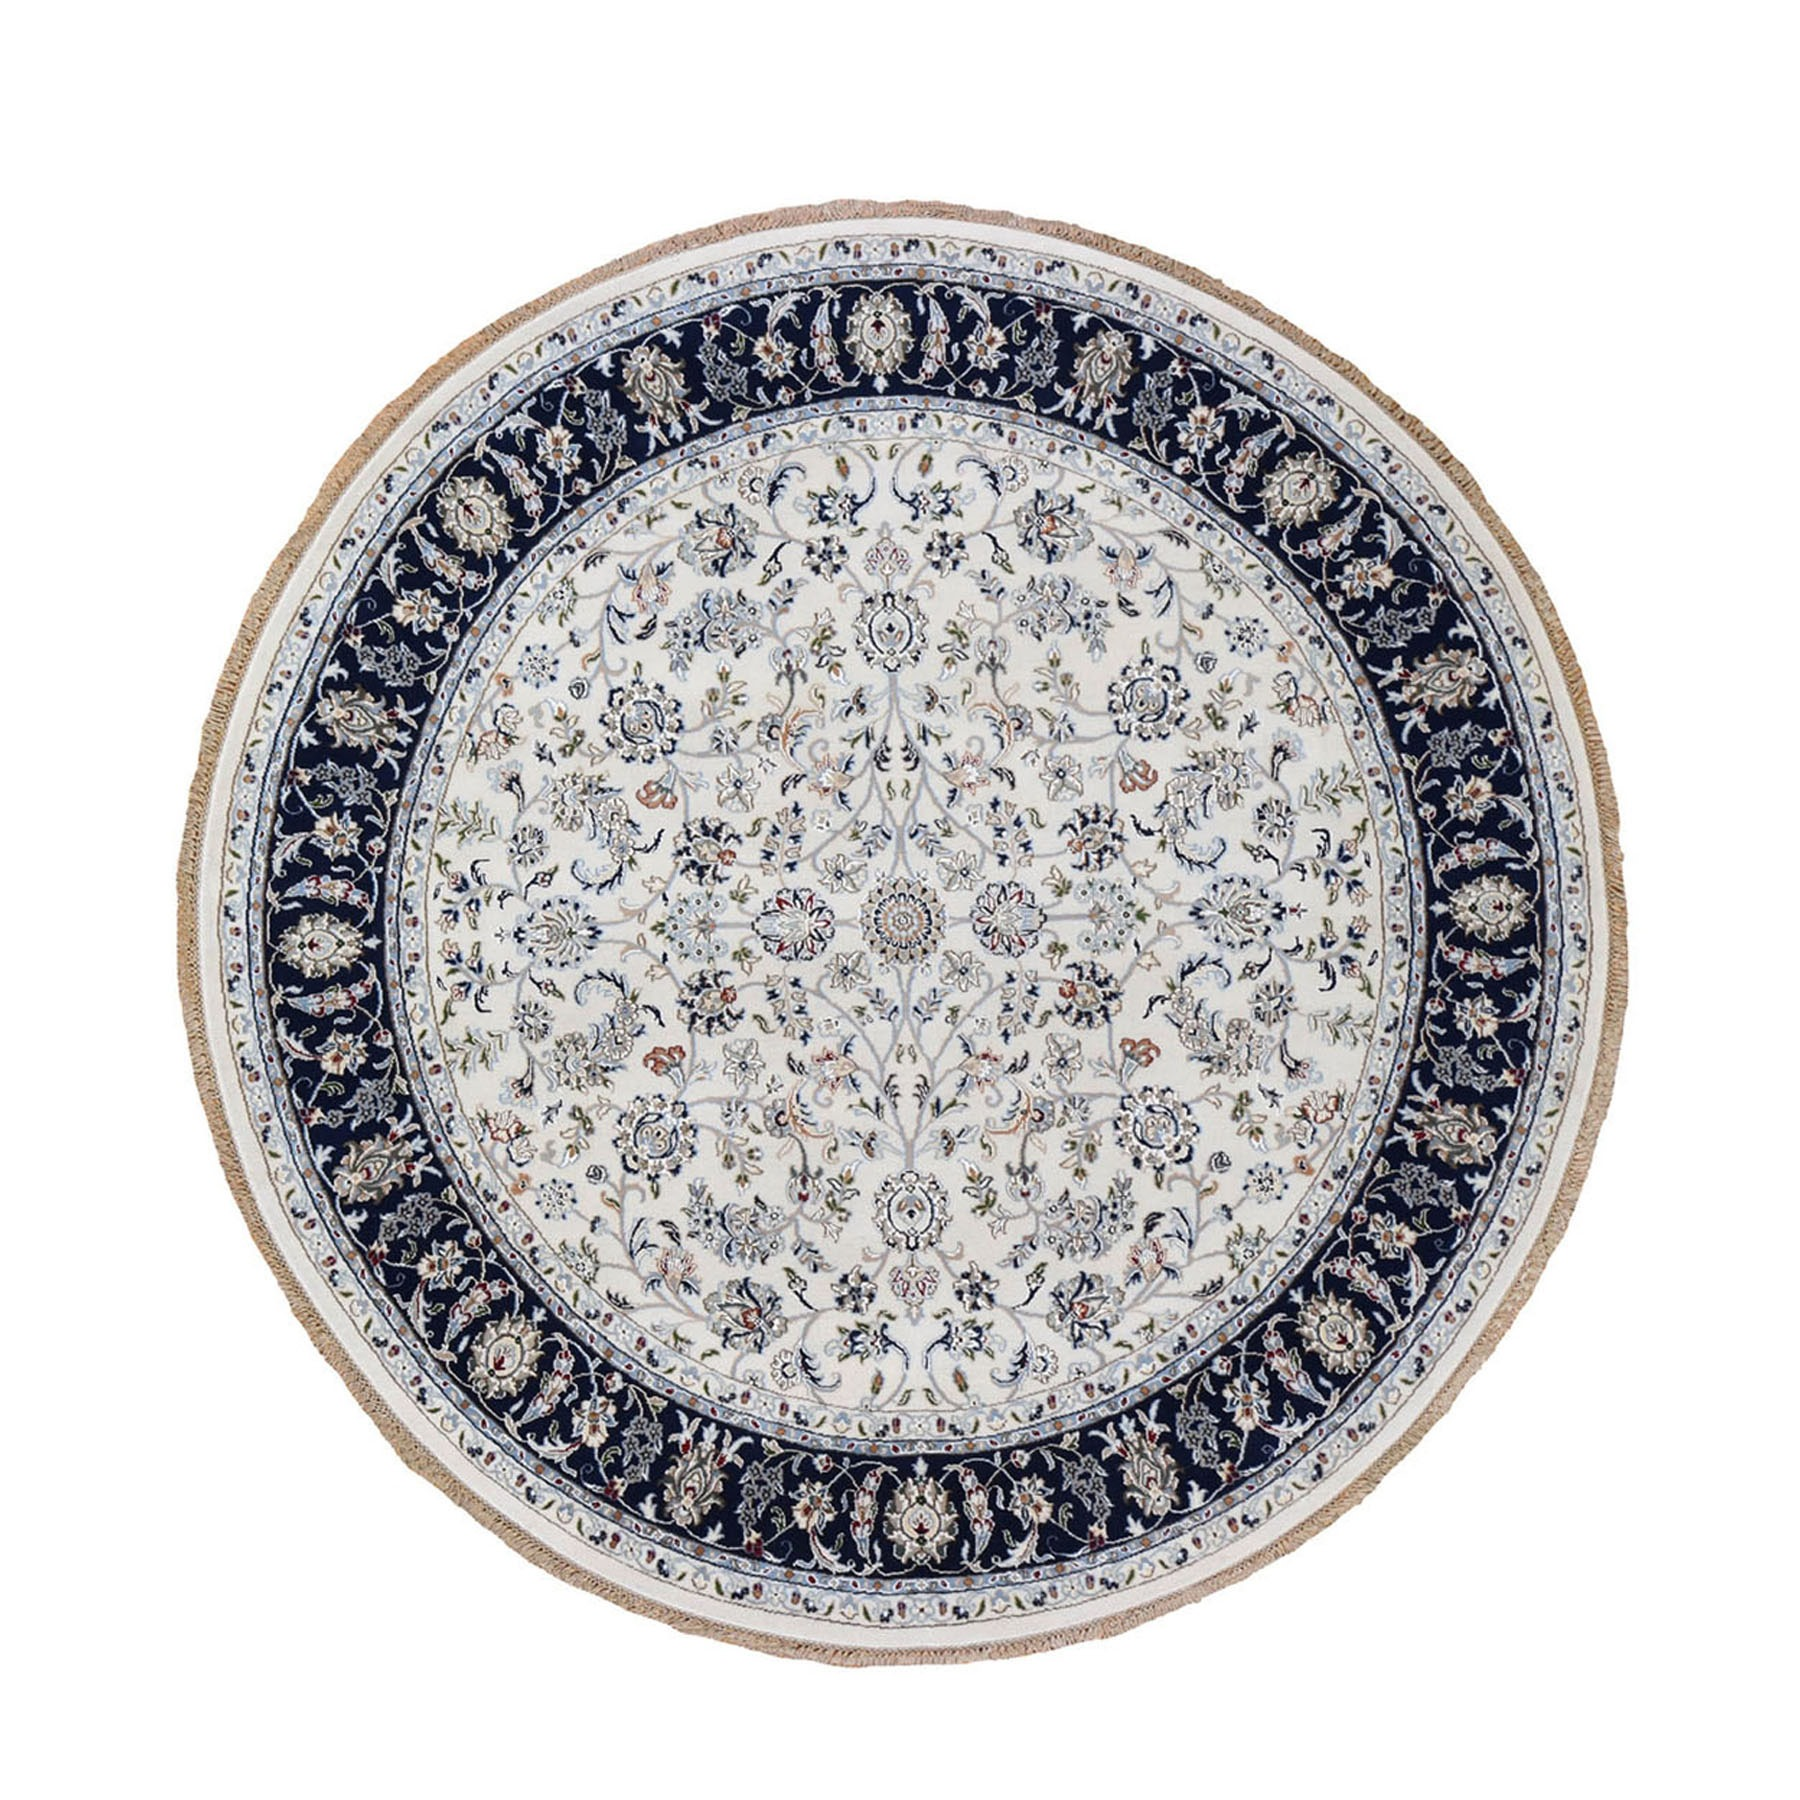 Pirniakan Collection Hand Knotted Ivory Rug No: 0199986